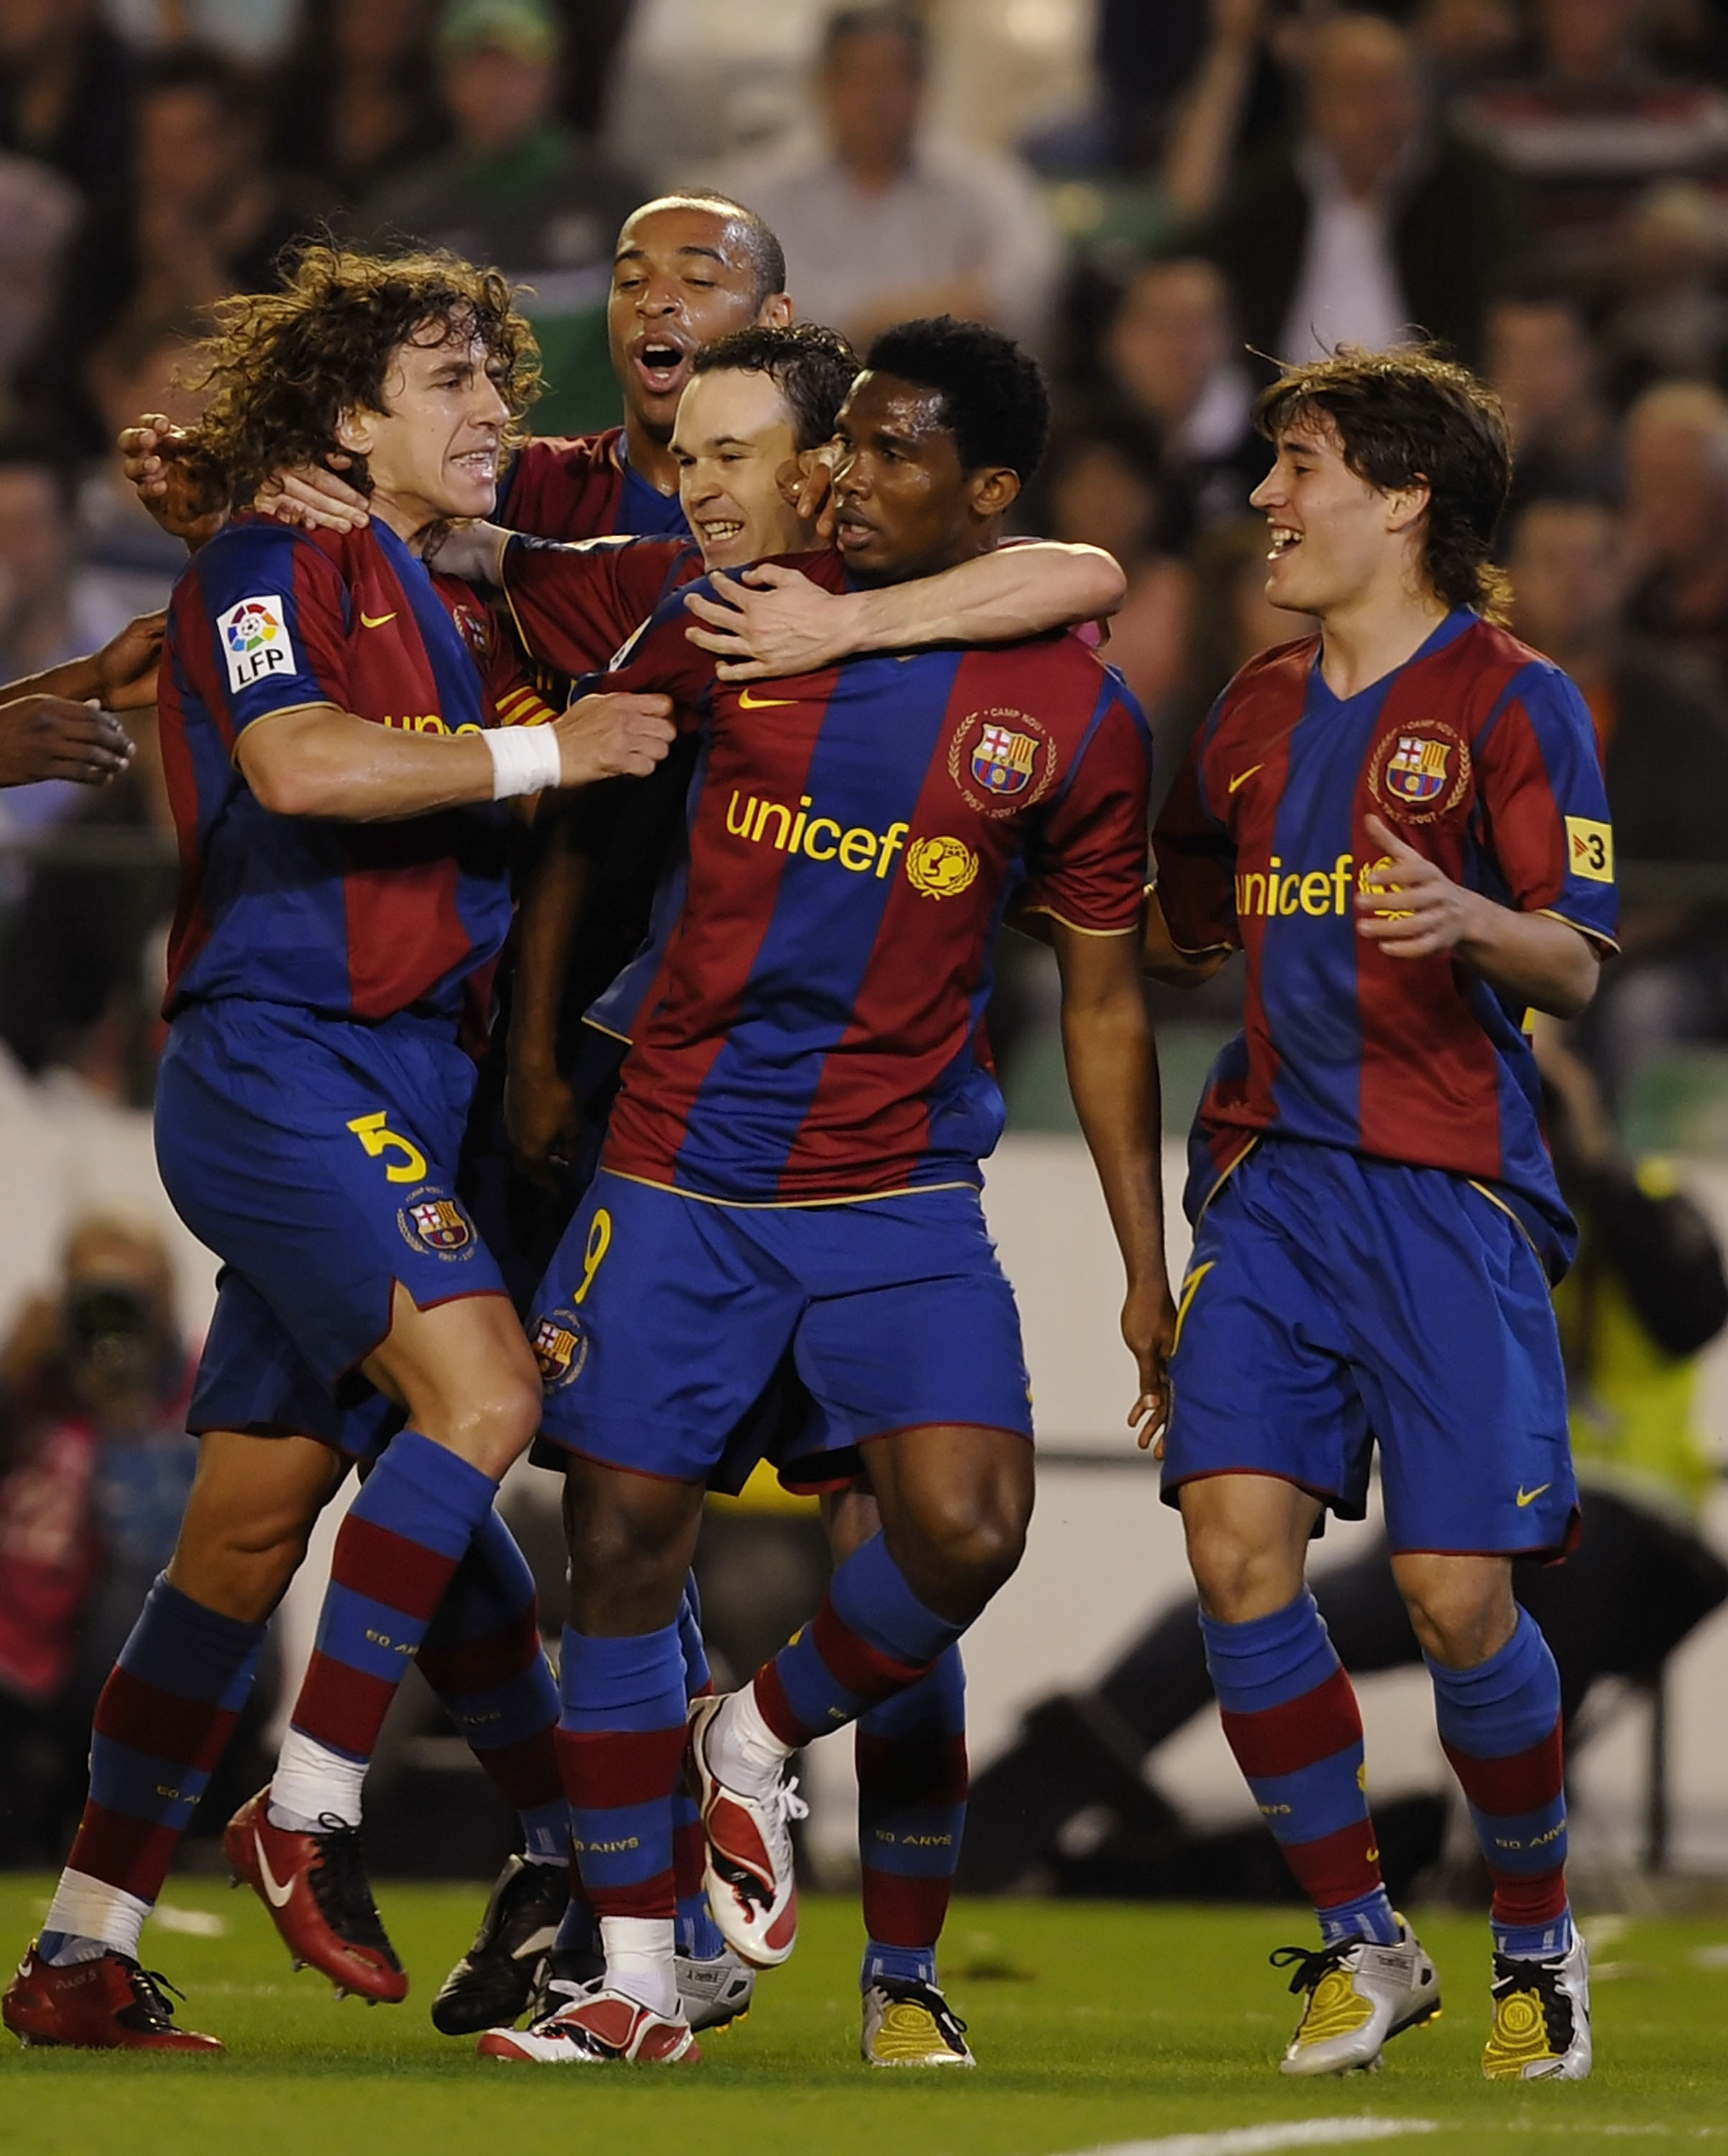 SEVILLE, SPAIN - MARCH 29: Samuel Eto'o (C) of Barcelona celebrates with Carles Puyol (L) and Andres Iniesta after he scored their second goal during the La Liga match between Real Betis and Barcelona at the Manuel Ruiz de Lopera stadium on March 29, 2008